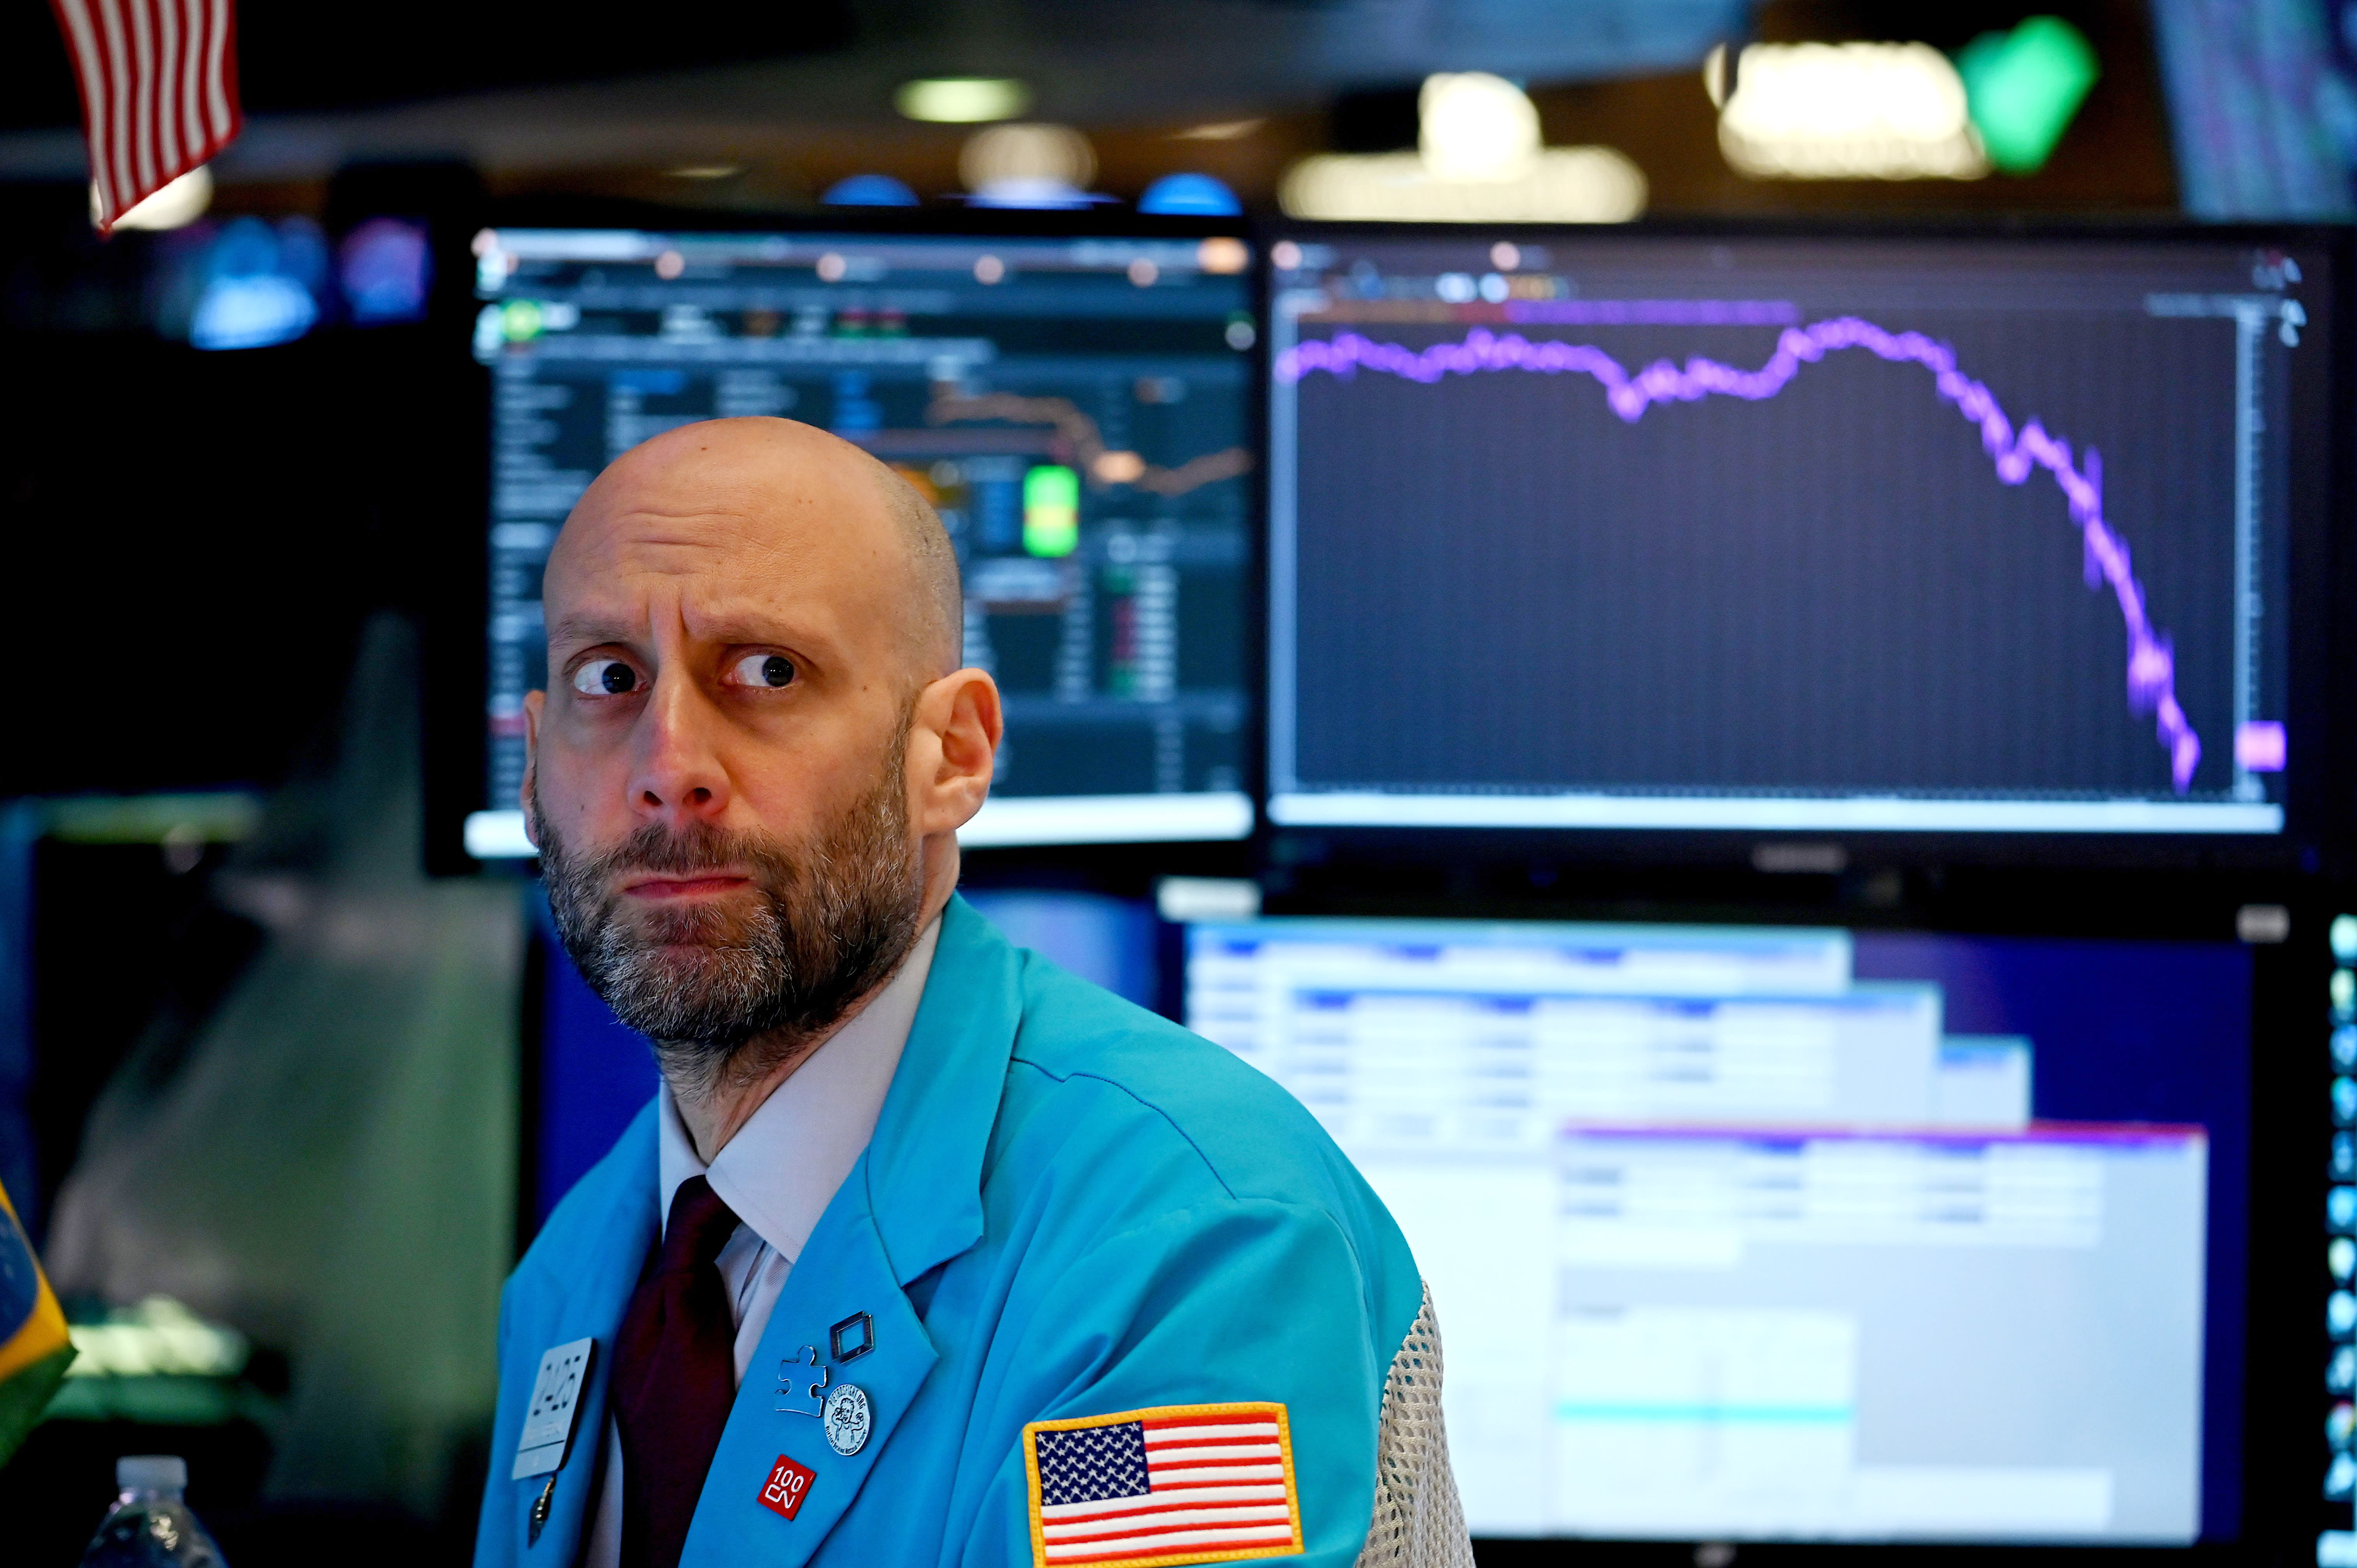 Stock market live updates: Dow futures up, bracing for jobless claims